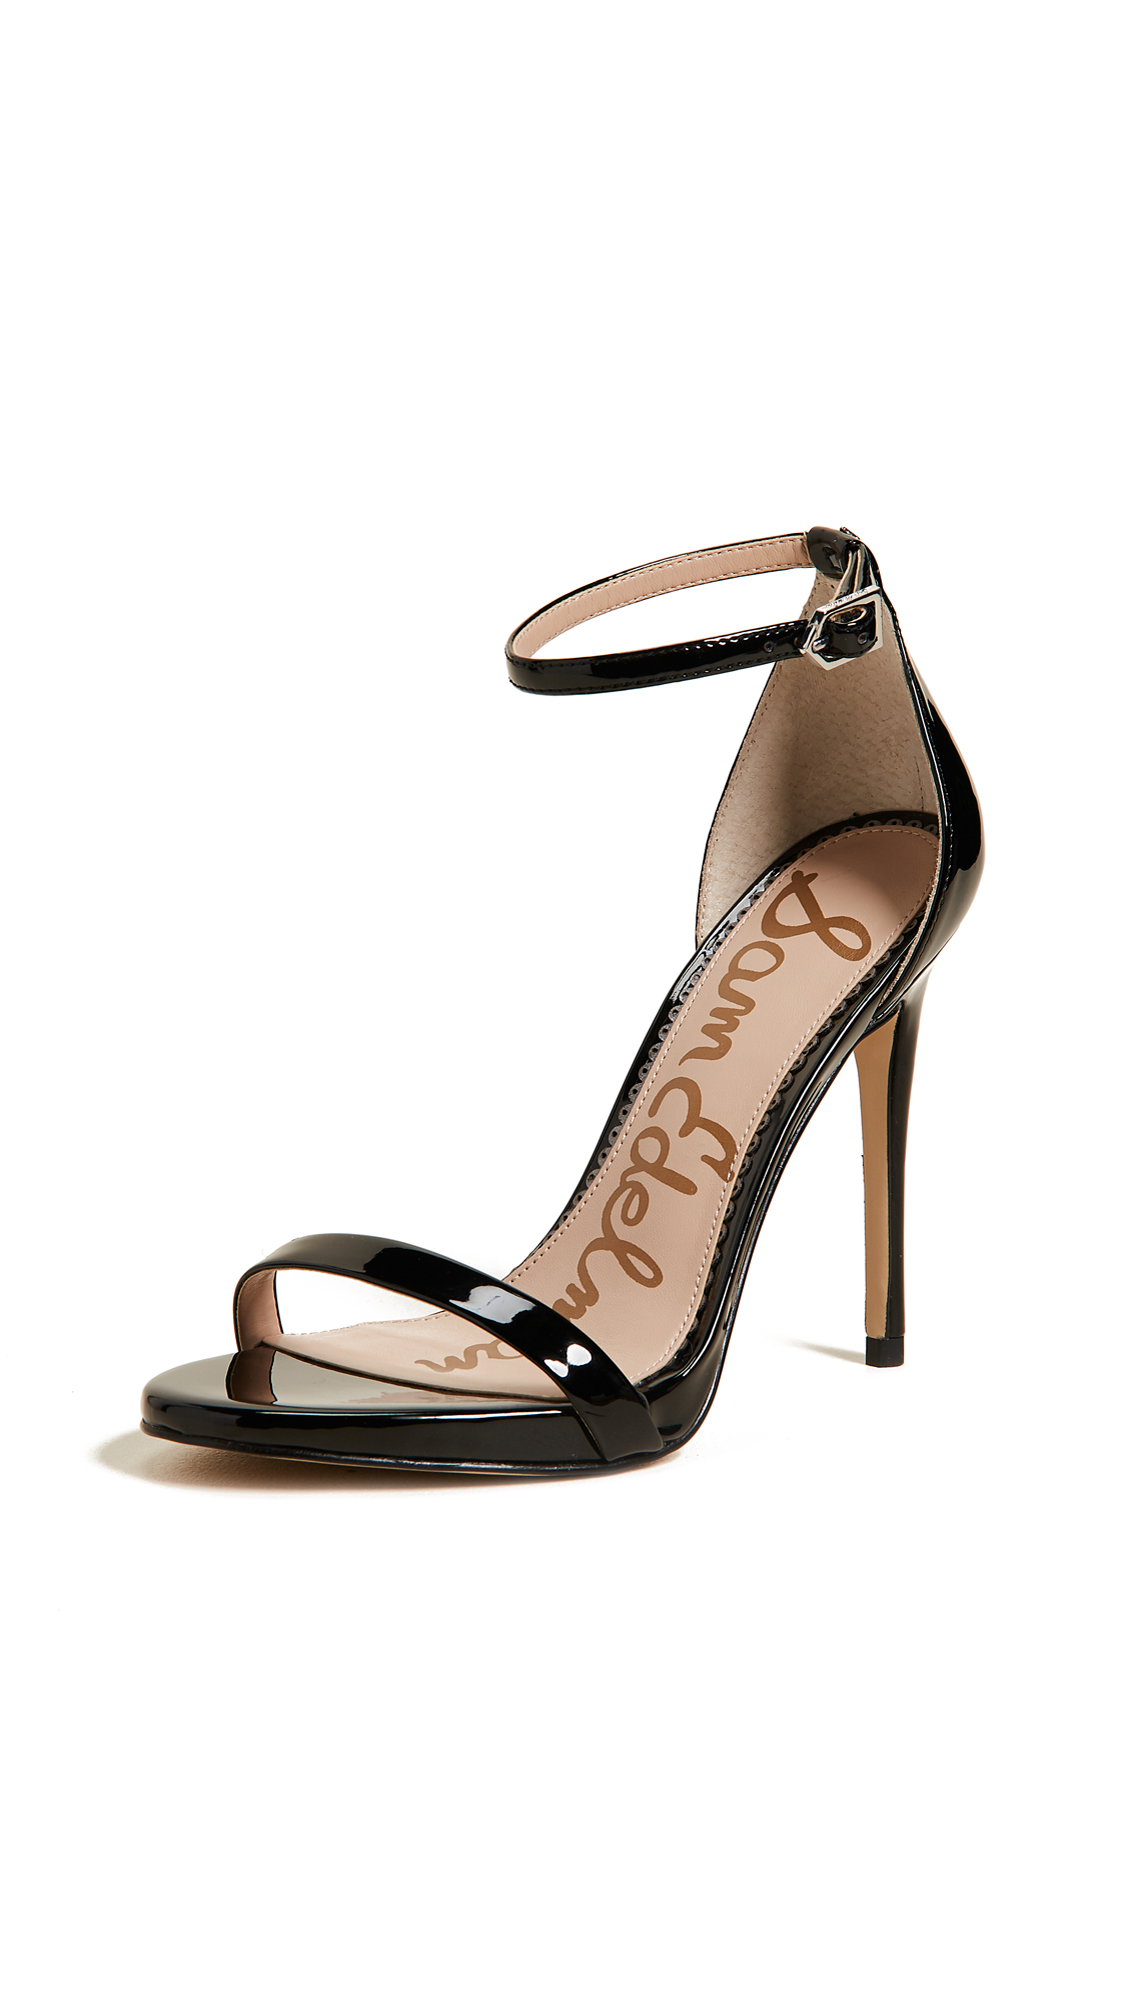 Sam Edelman Ariella Sandals - Black